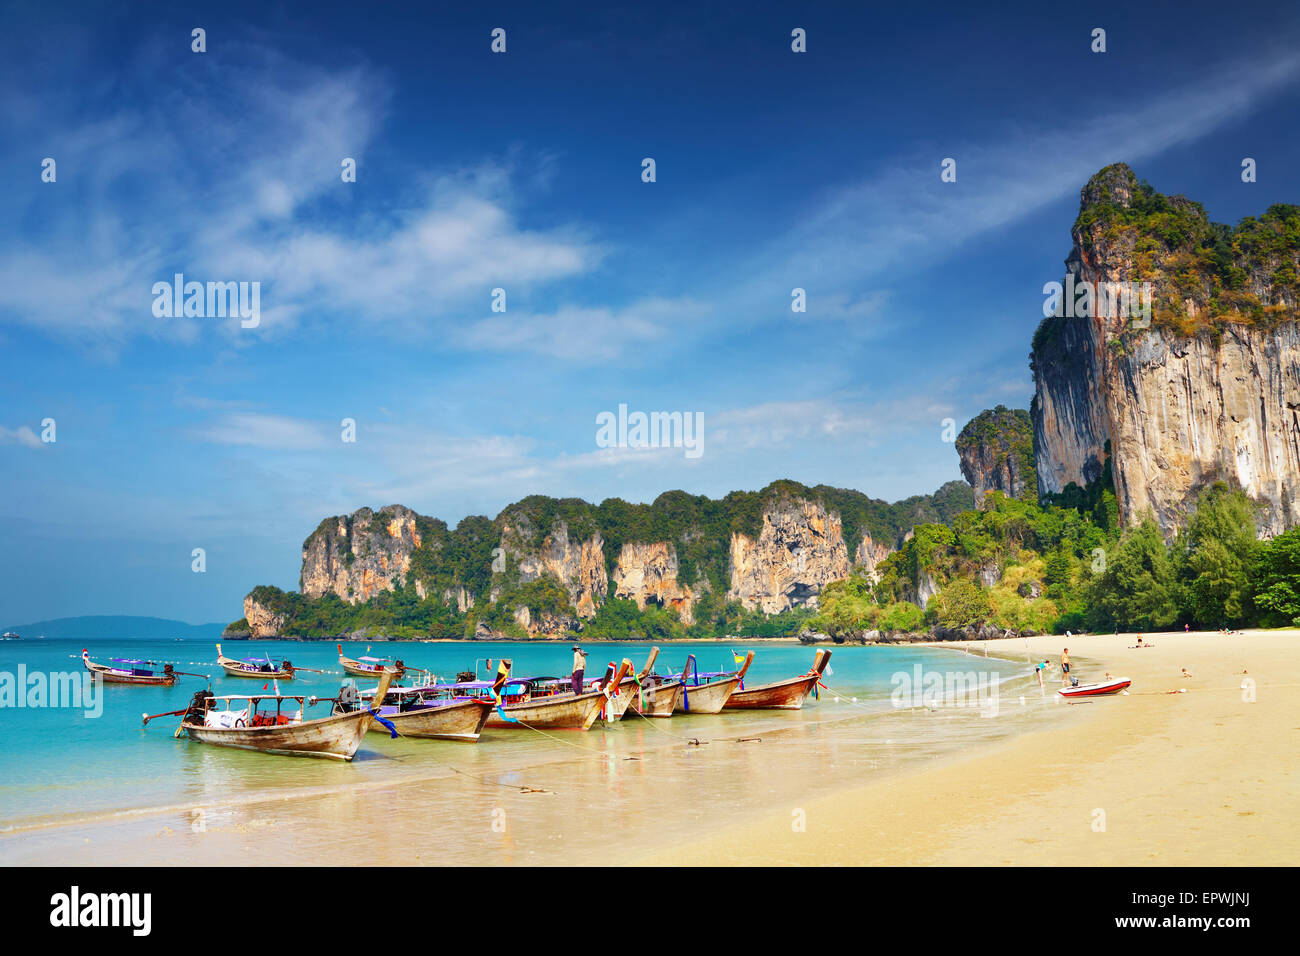 Playa Tropical, Mar de Andaman, Tailandia Imagen De Stock